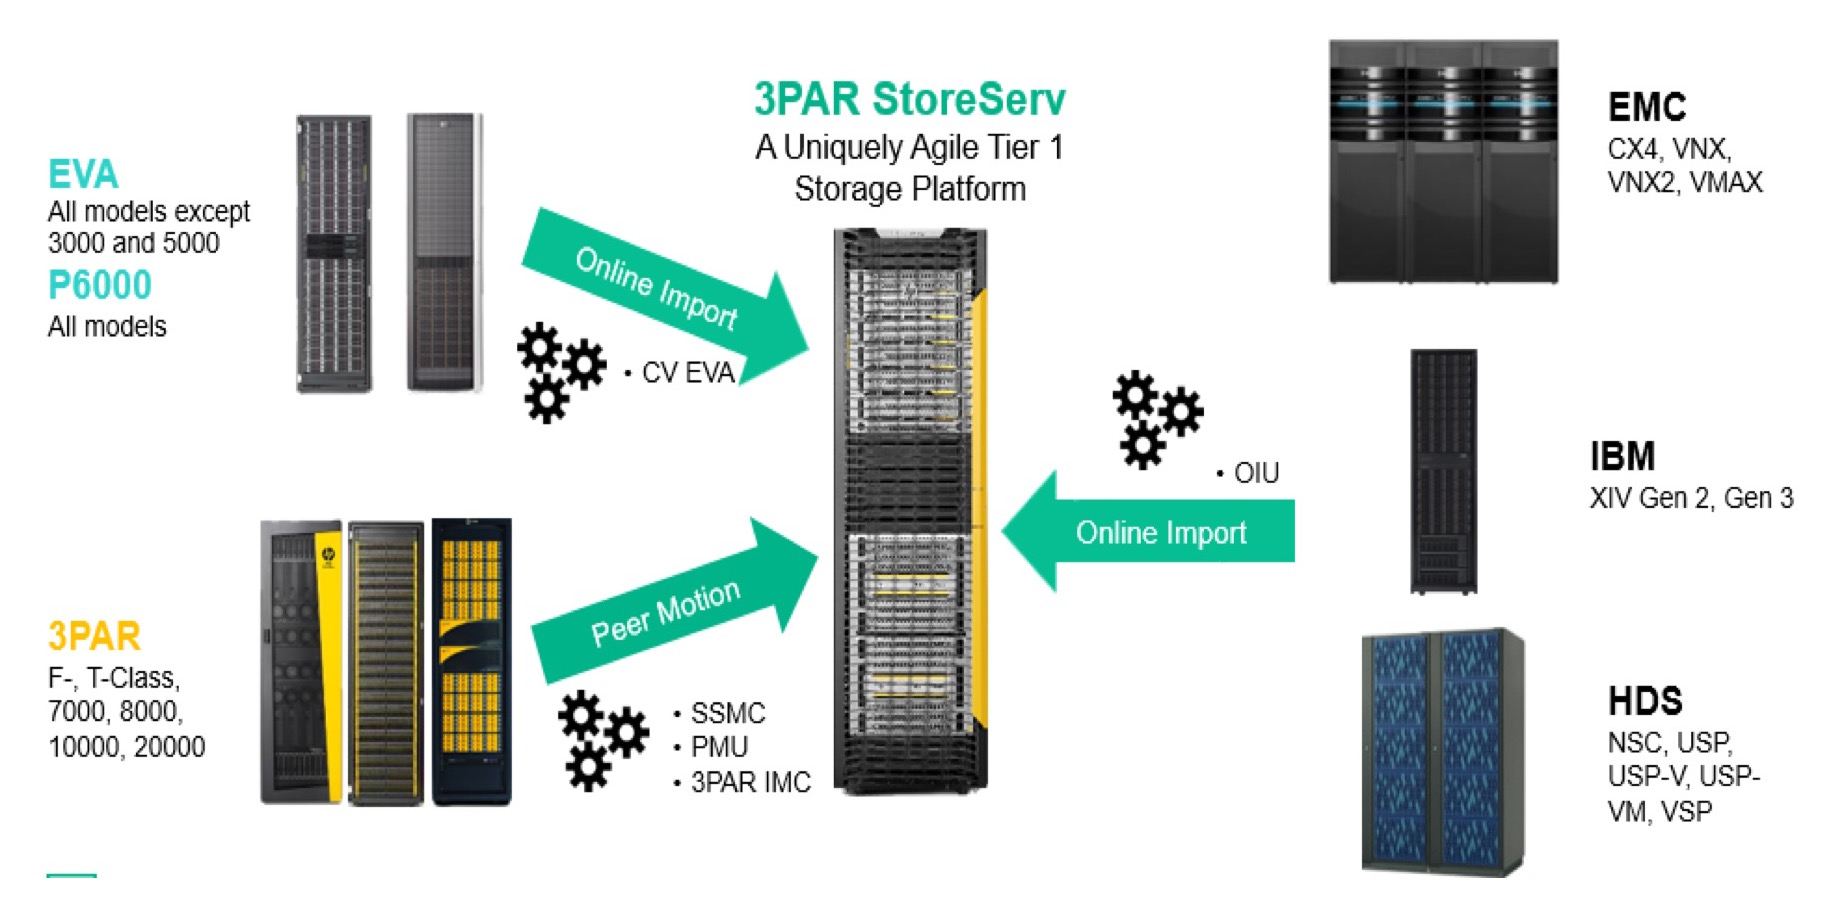 HPE 3PAR Online Import: The Right Choice for Data Migration